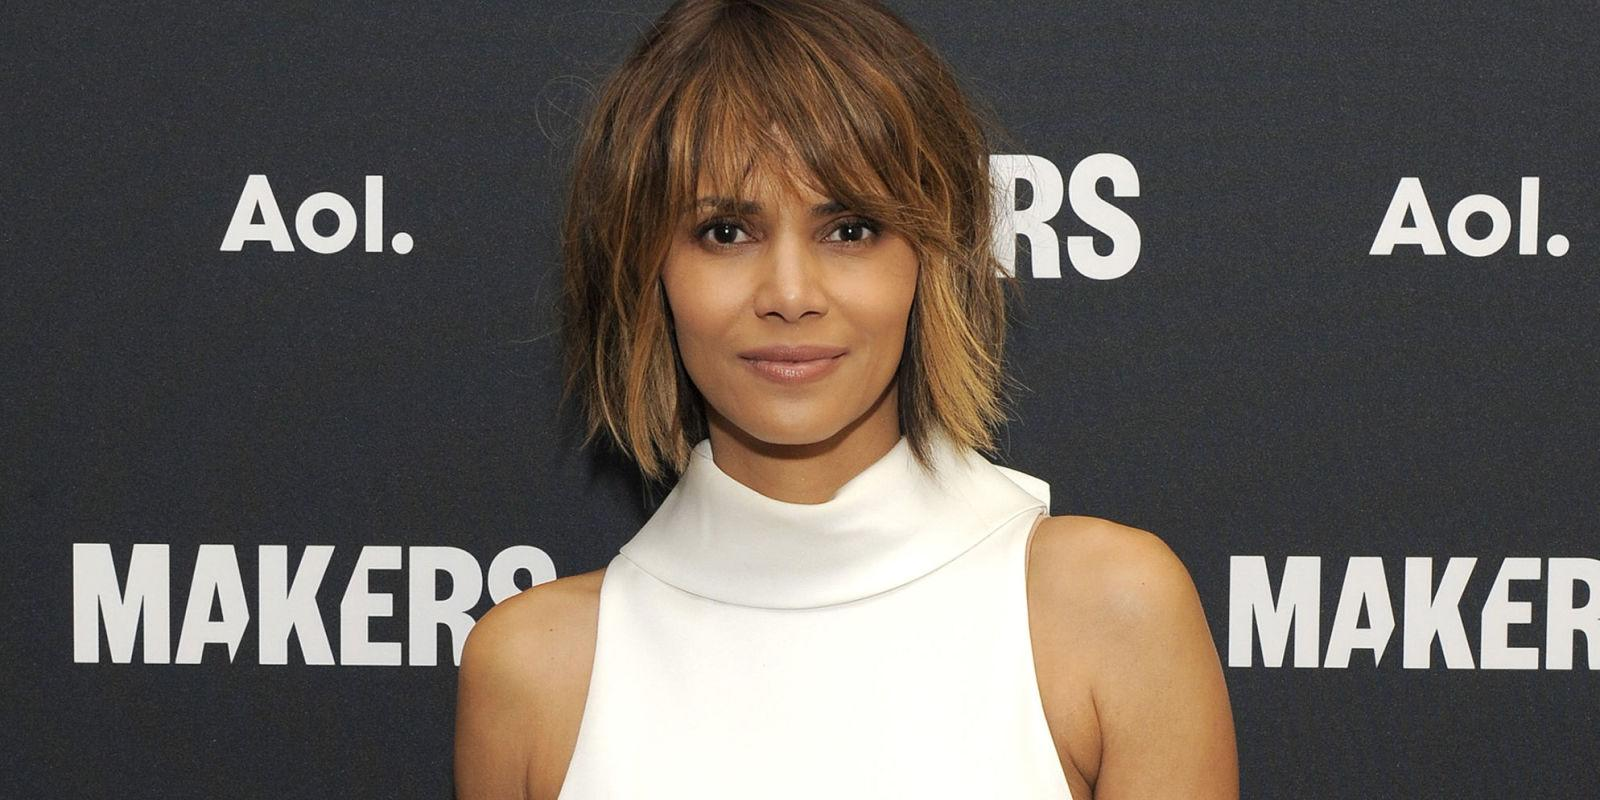 Halle Berry Opens Up About Diversity in Hollywood and Calls for Change